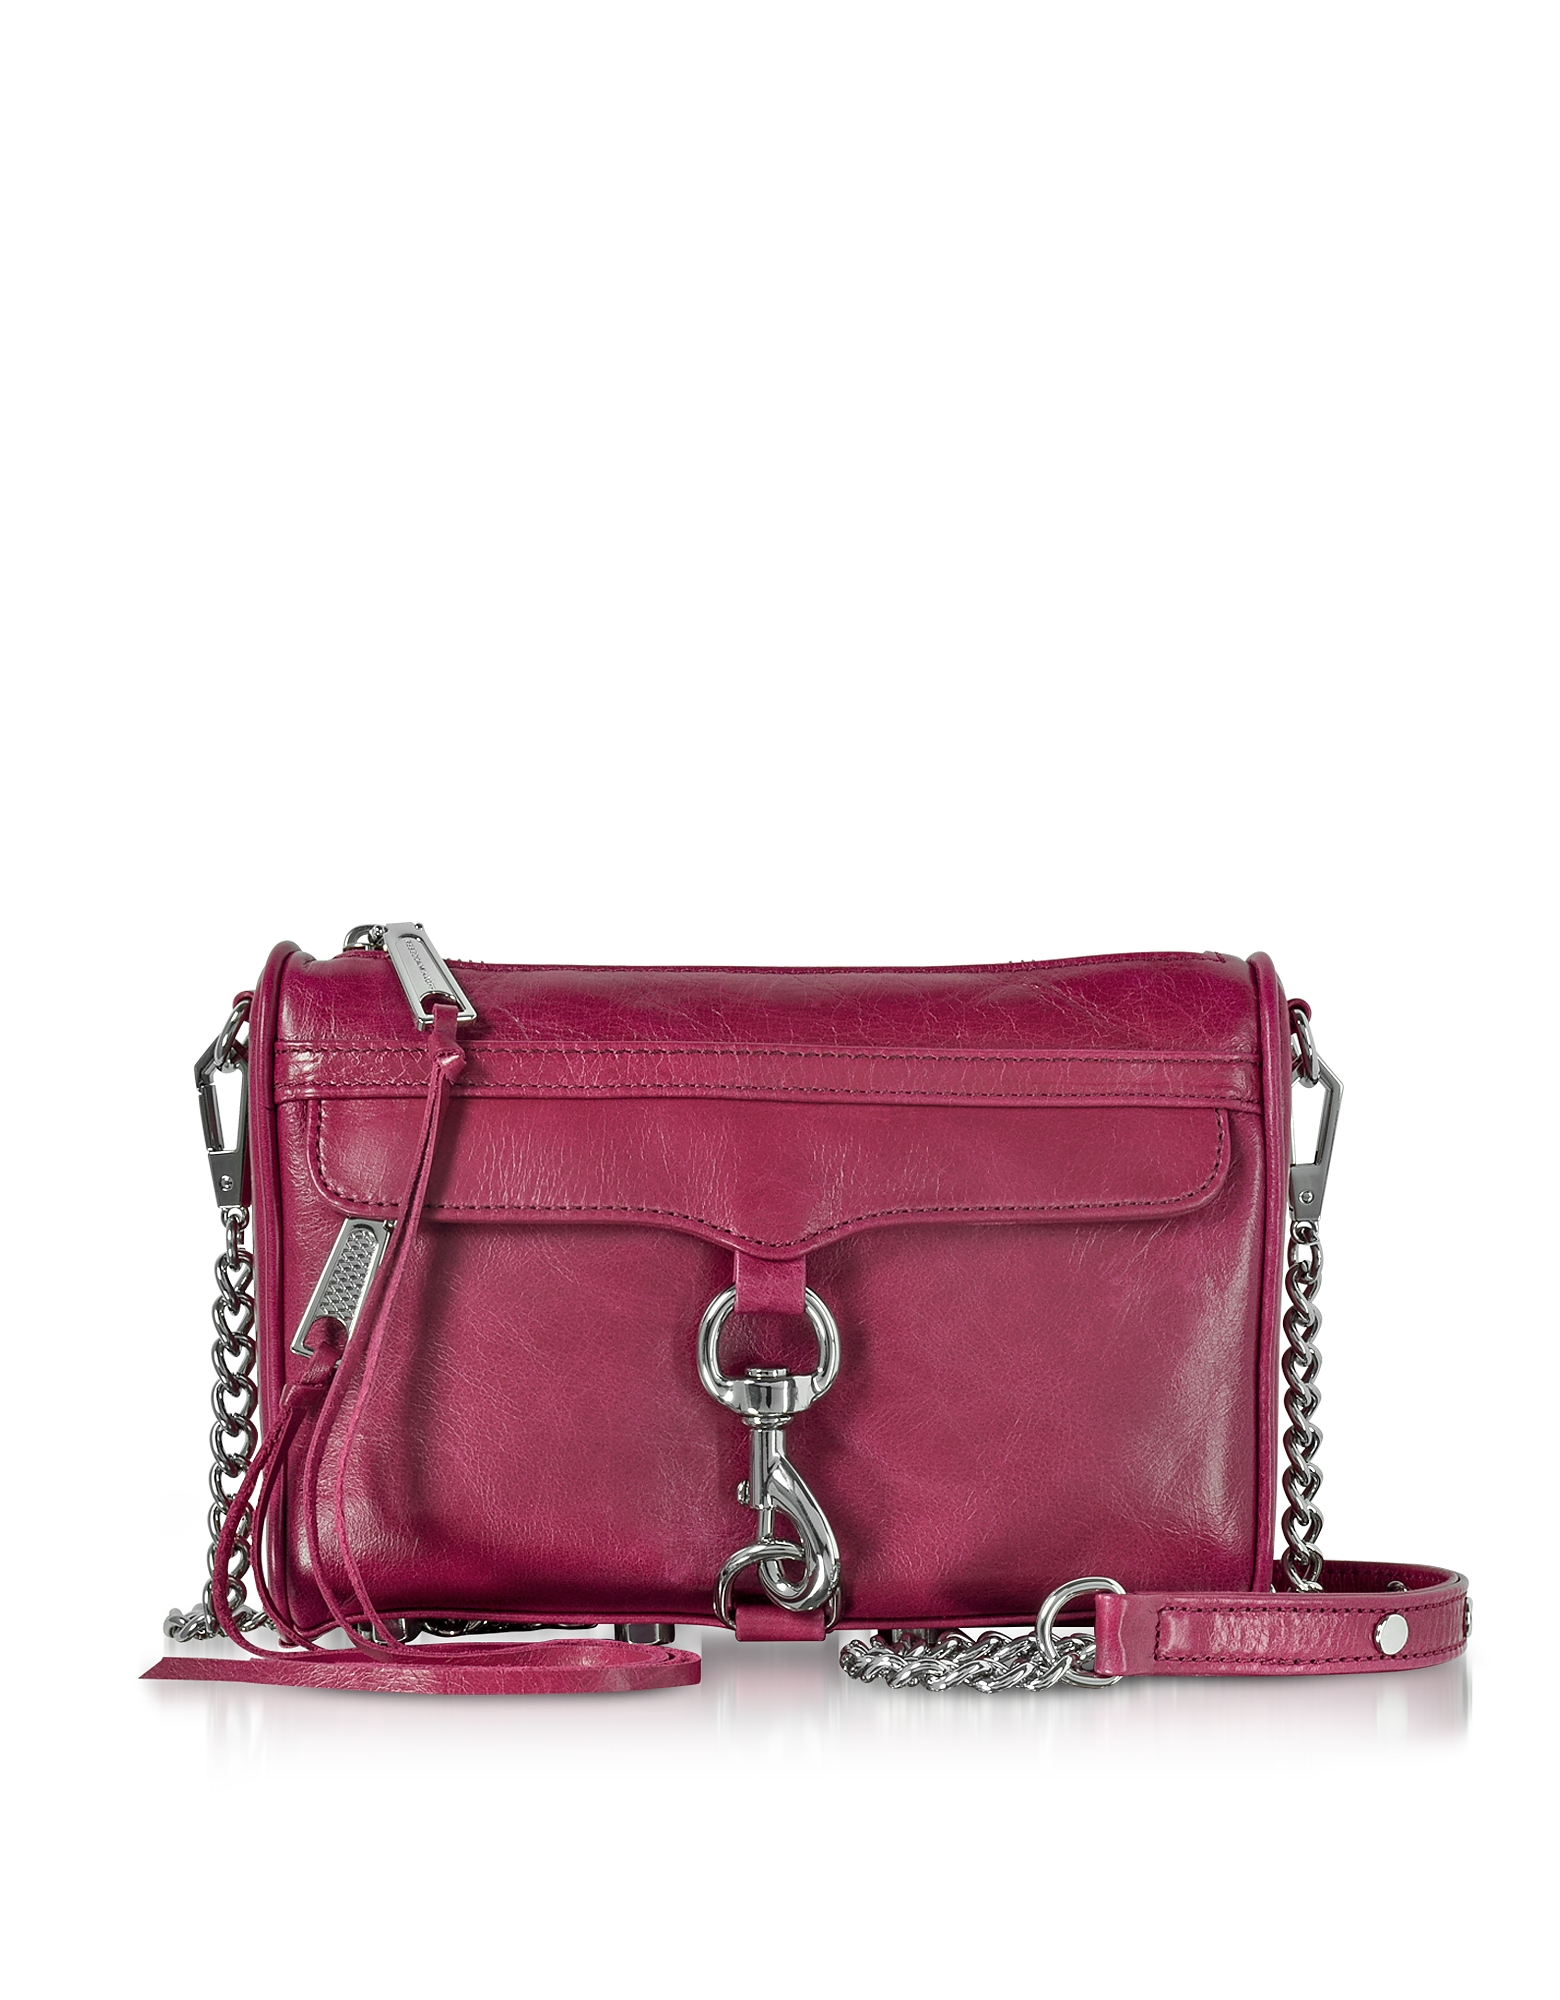 Rebecca Minkoff Handbags, Mini M.A.C. Beet Distressed Leather Crossbody Bag